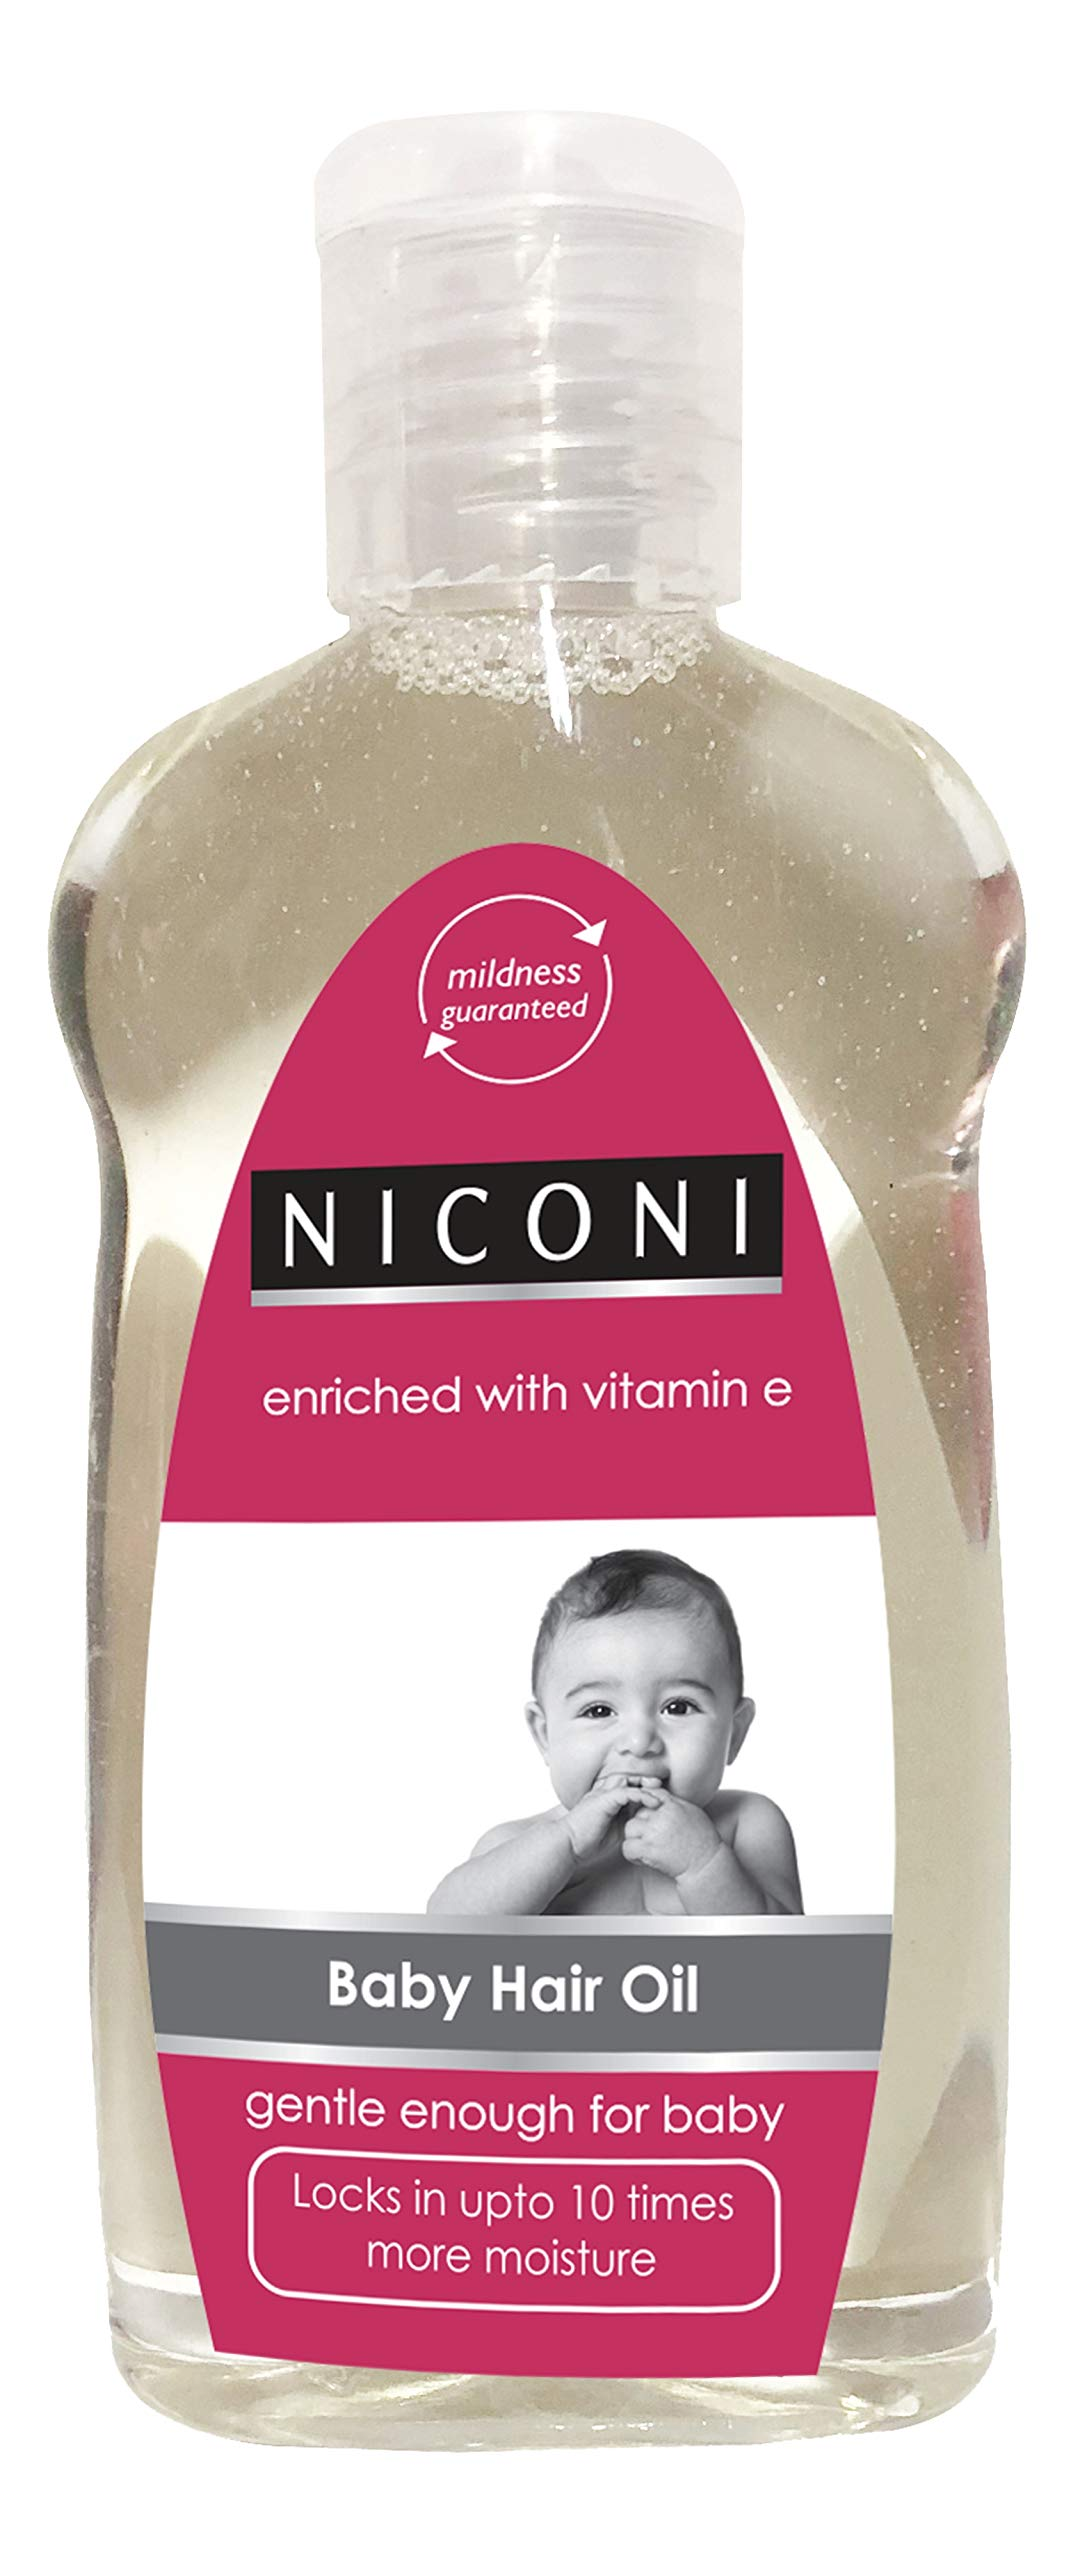 Niconi Conditioning Hair Oil For Babies Enriched With Vitamine E (100ml) by Niconi